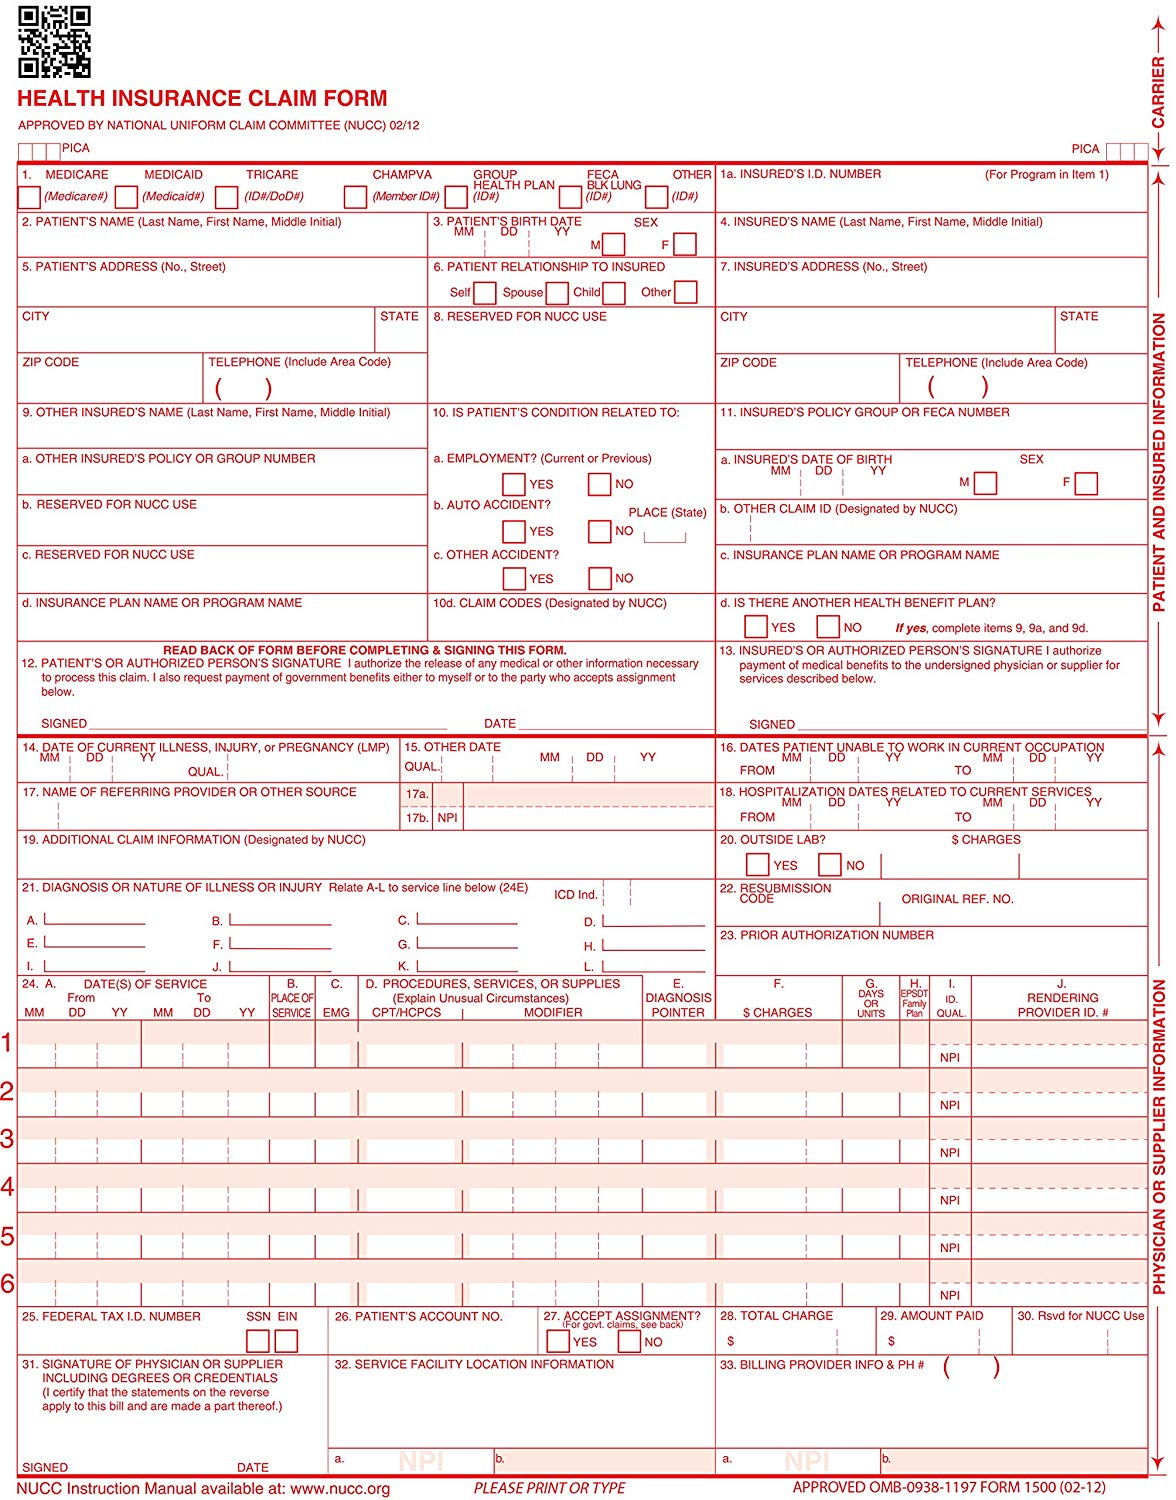 Transition To The Cms 1500 Health Insurance Claim Form (02 12) Version